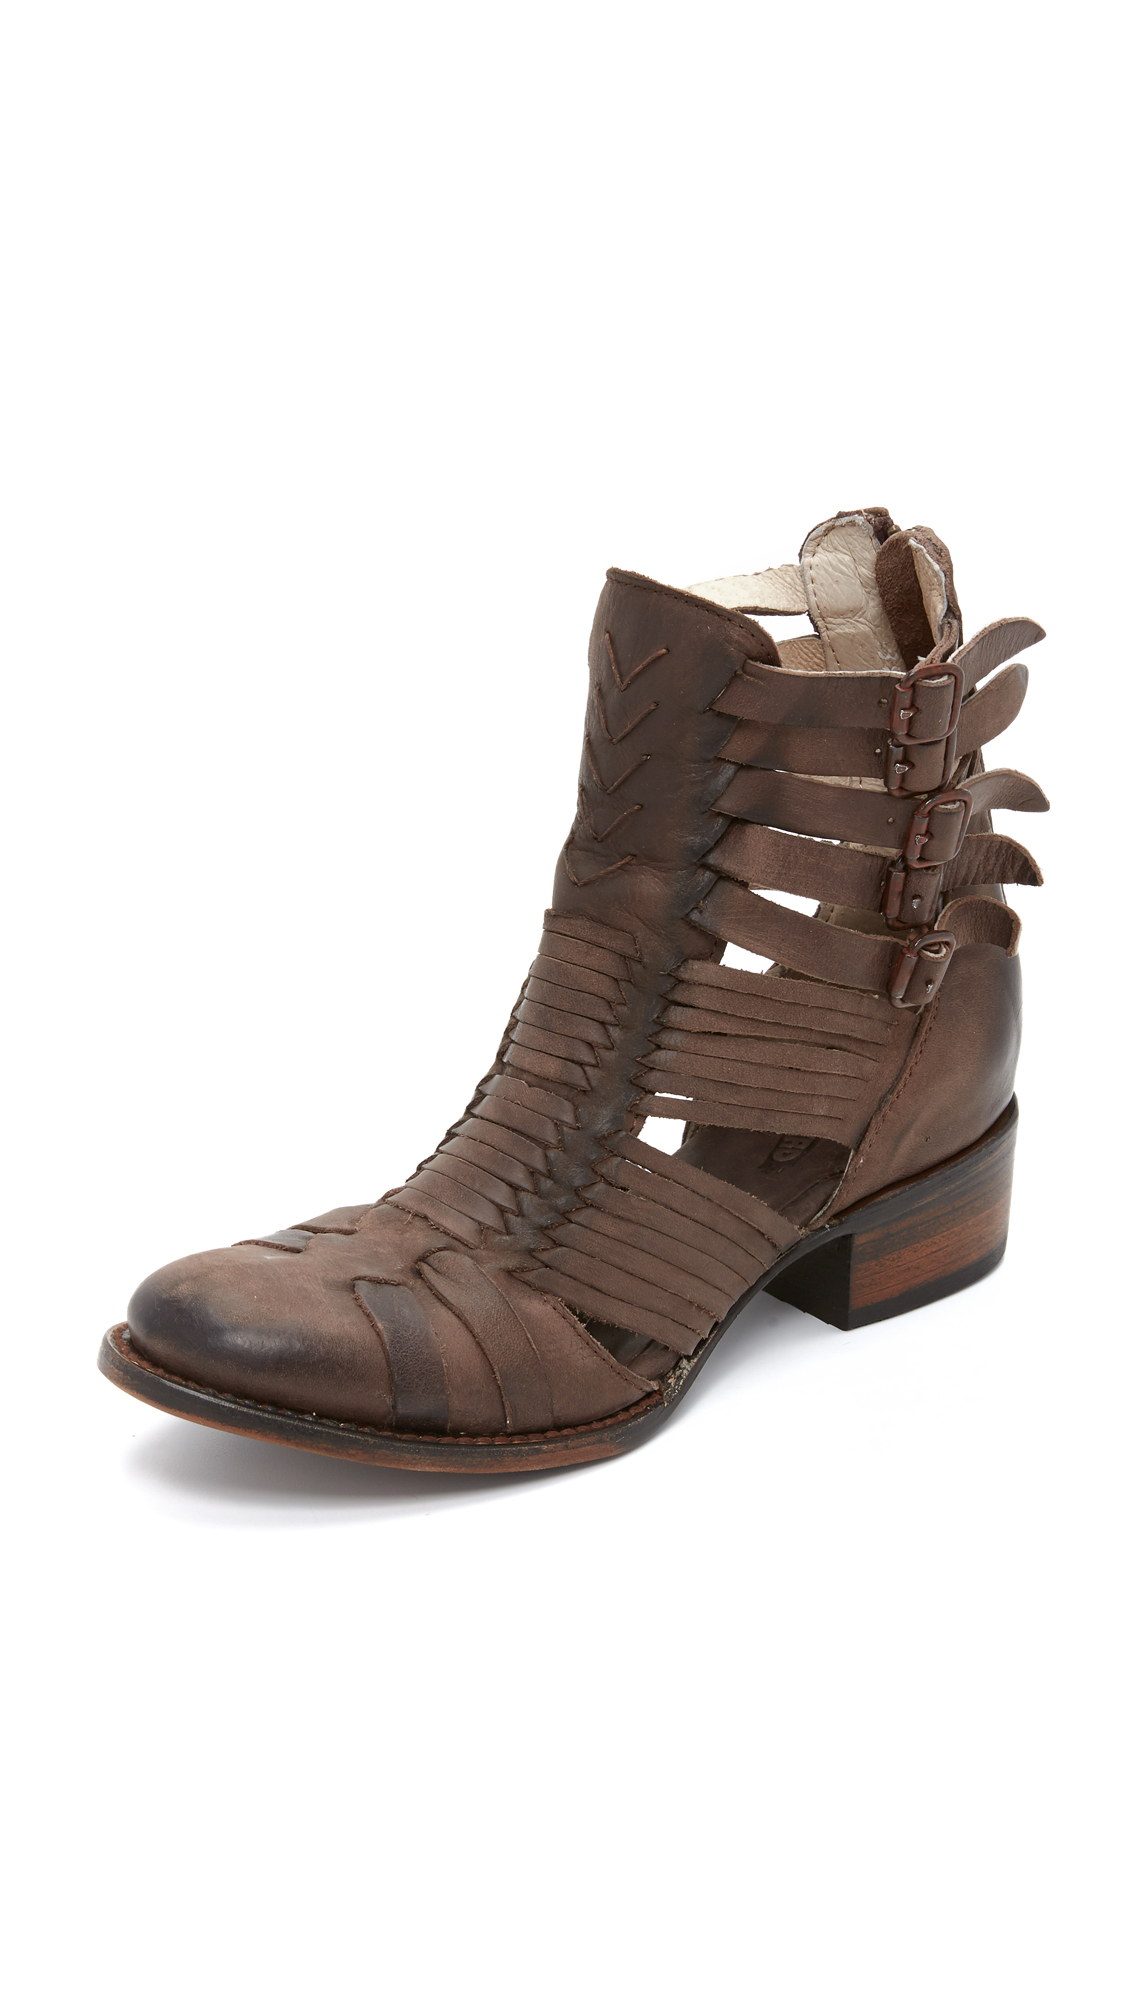 Freebird By Steven Sally Booties - Brown